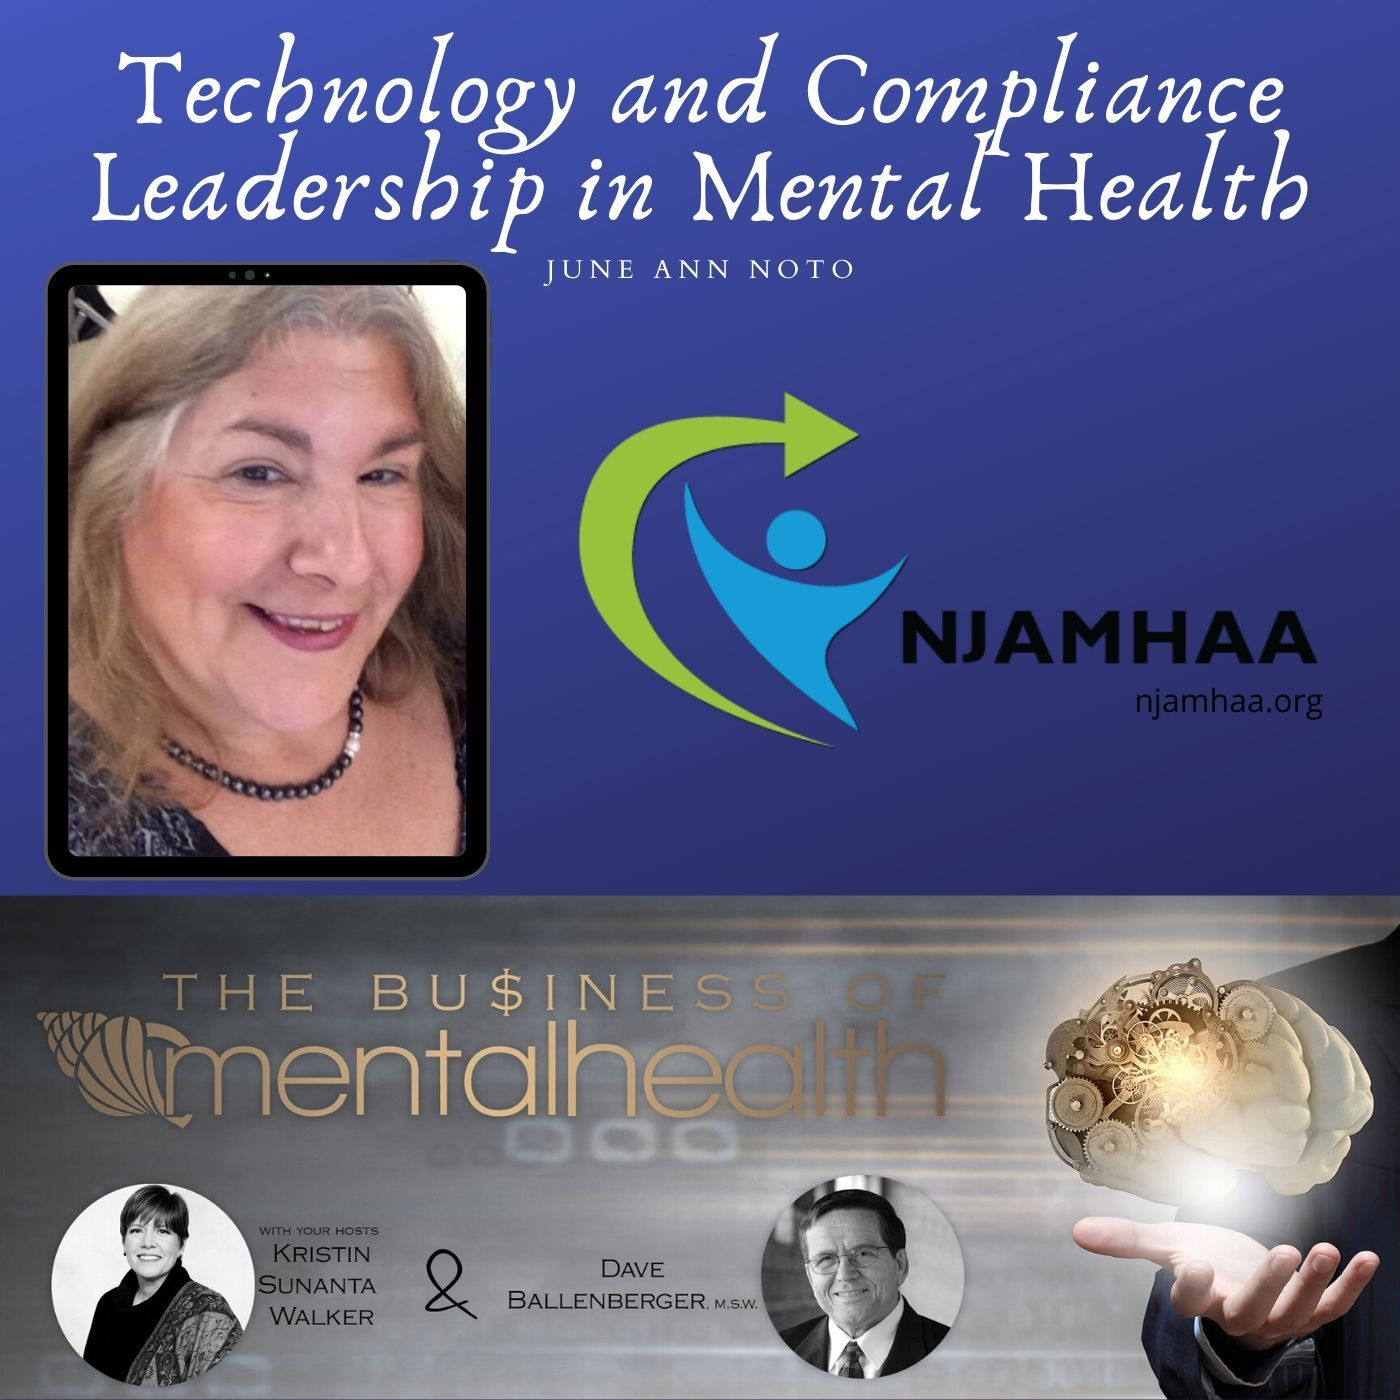 Mental Health News Radio - Technology and Compliance Leadership in Mental Health: June Noto